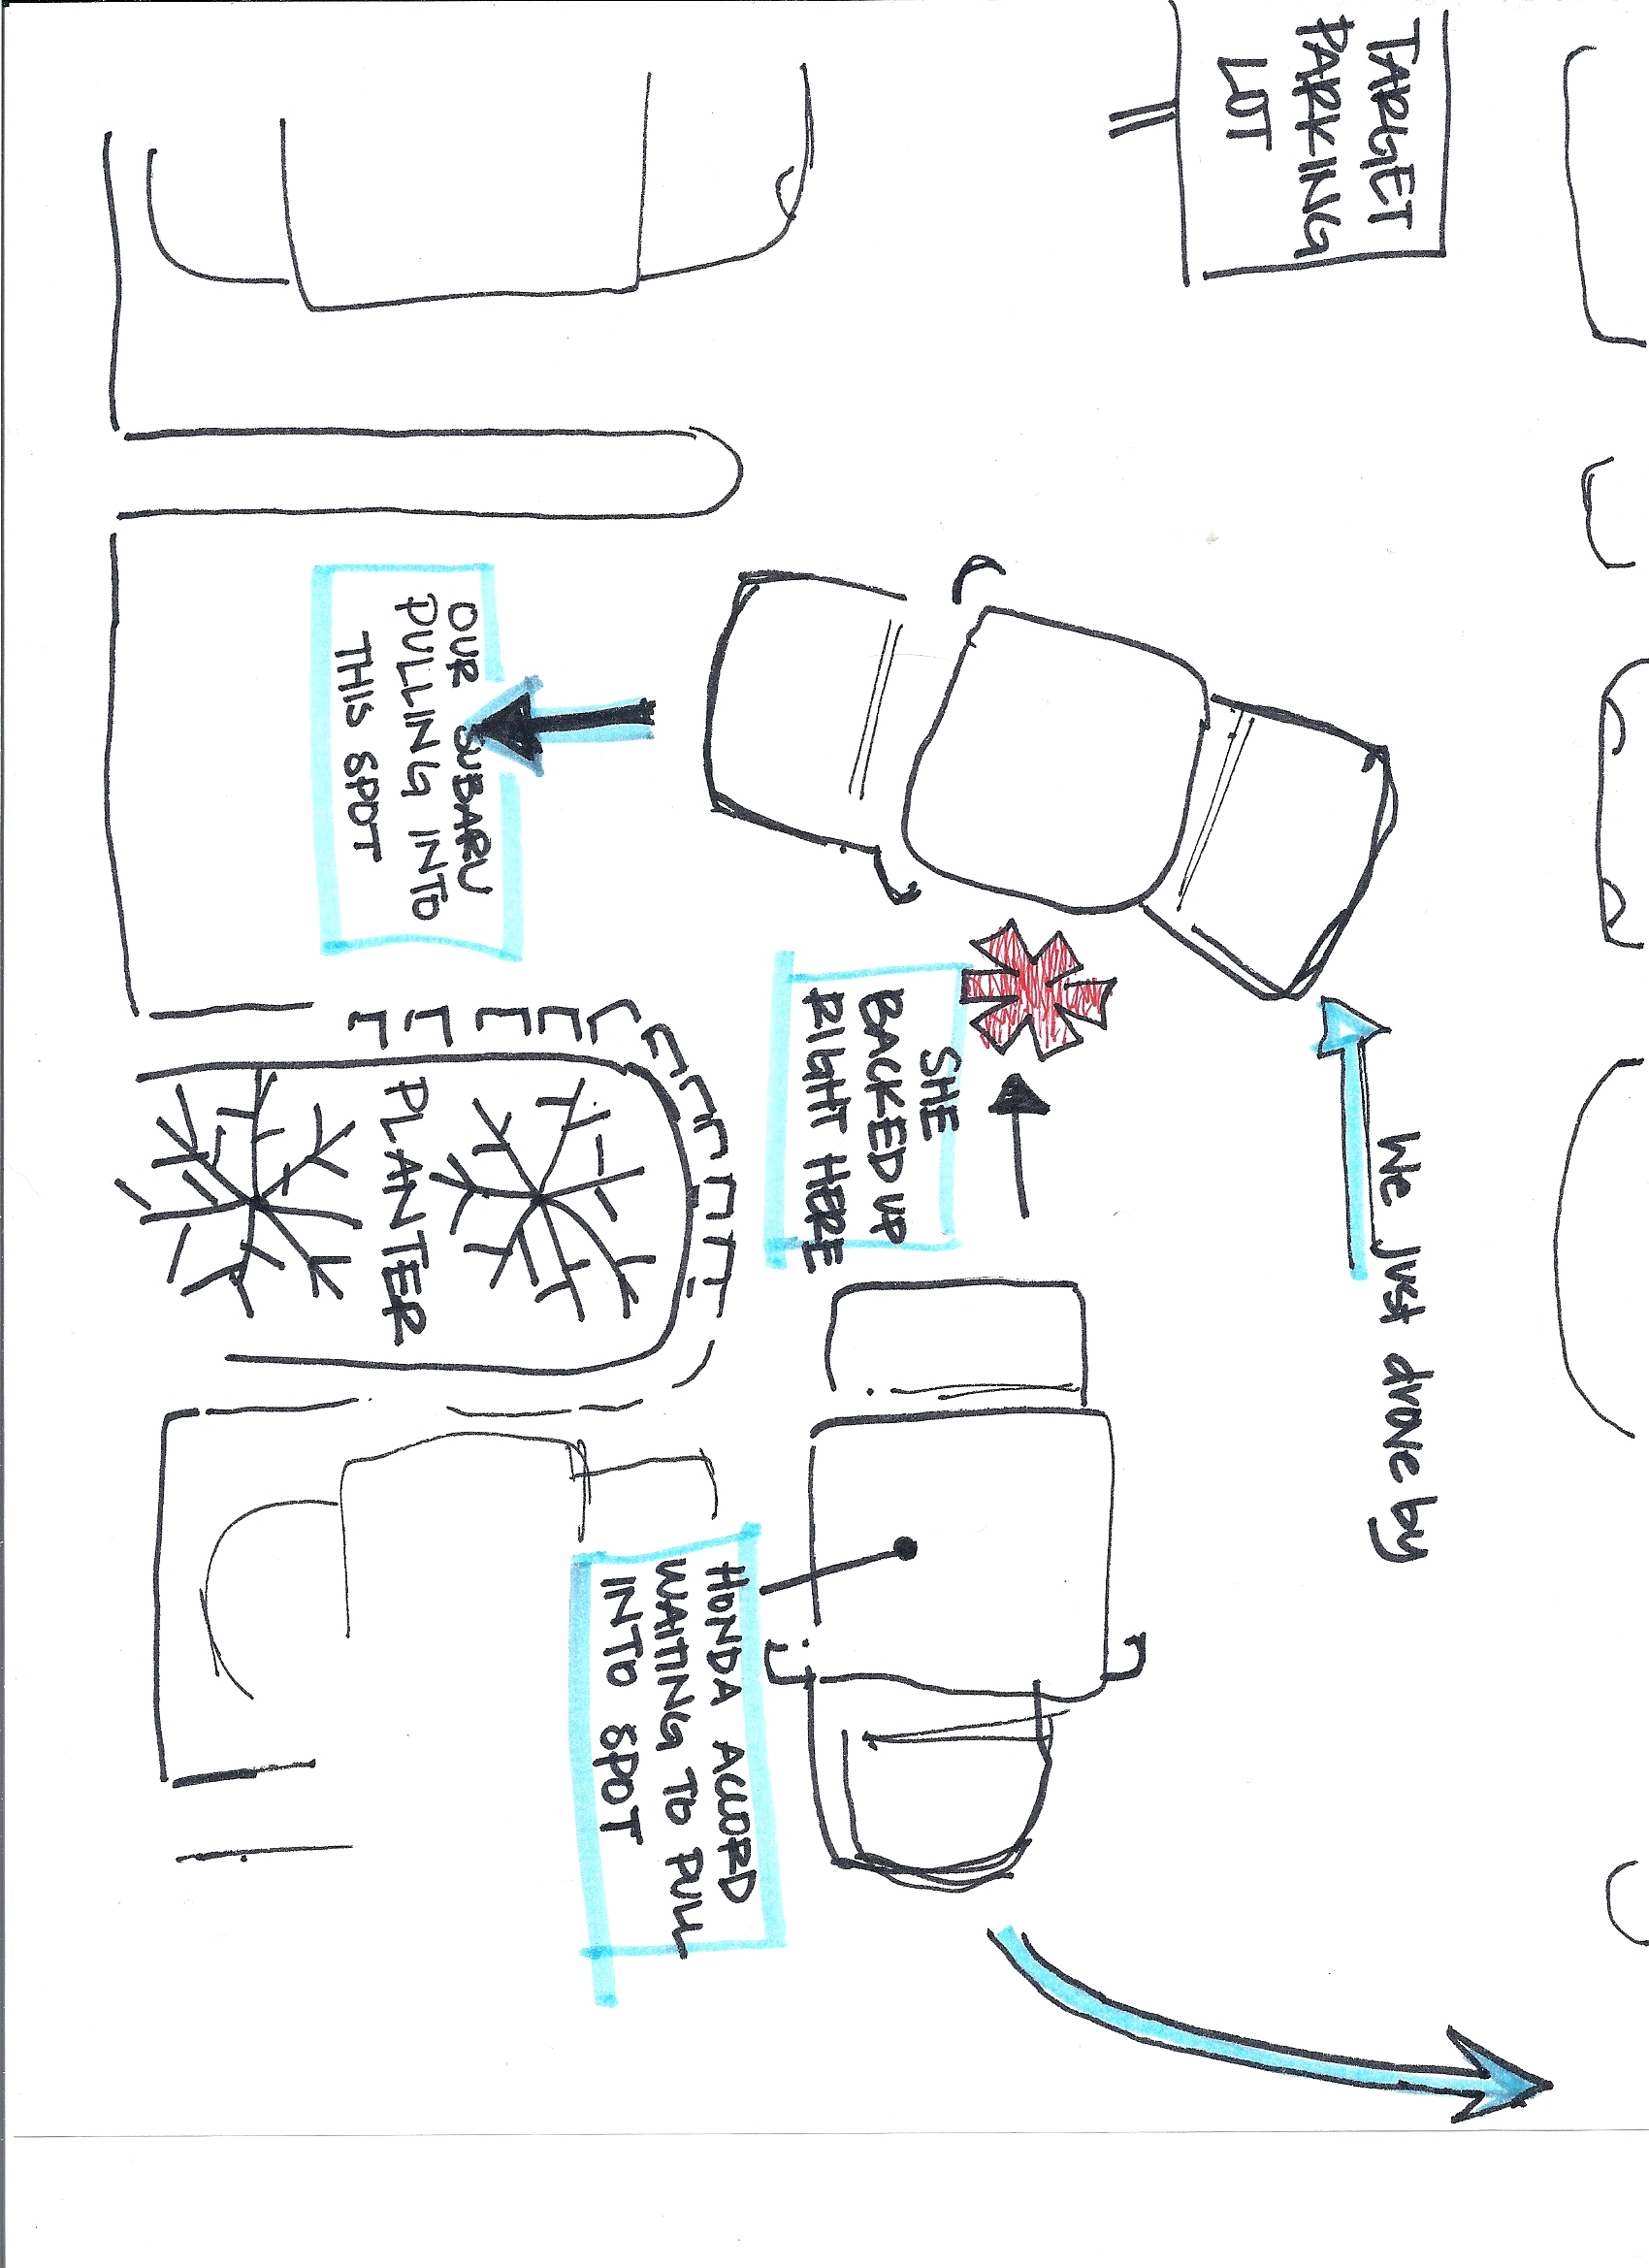 Car Accident Draw Diagram Car Accident